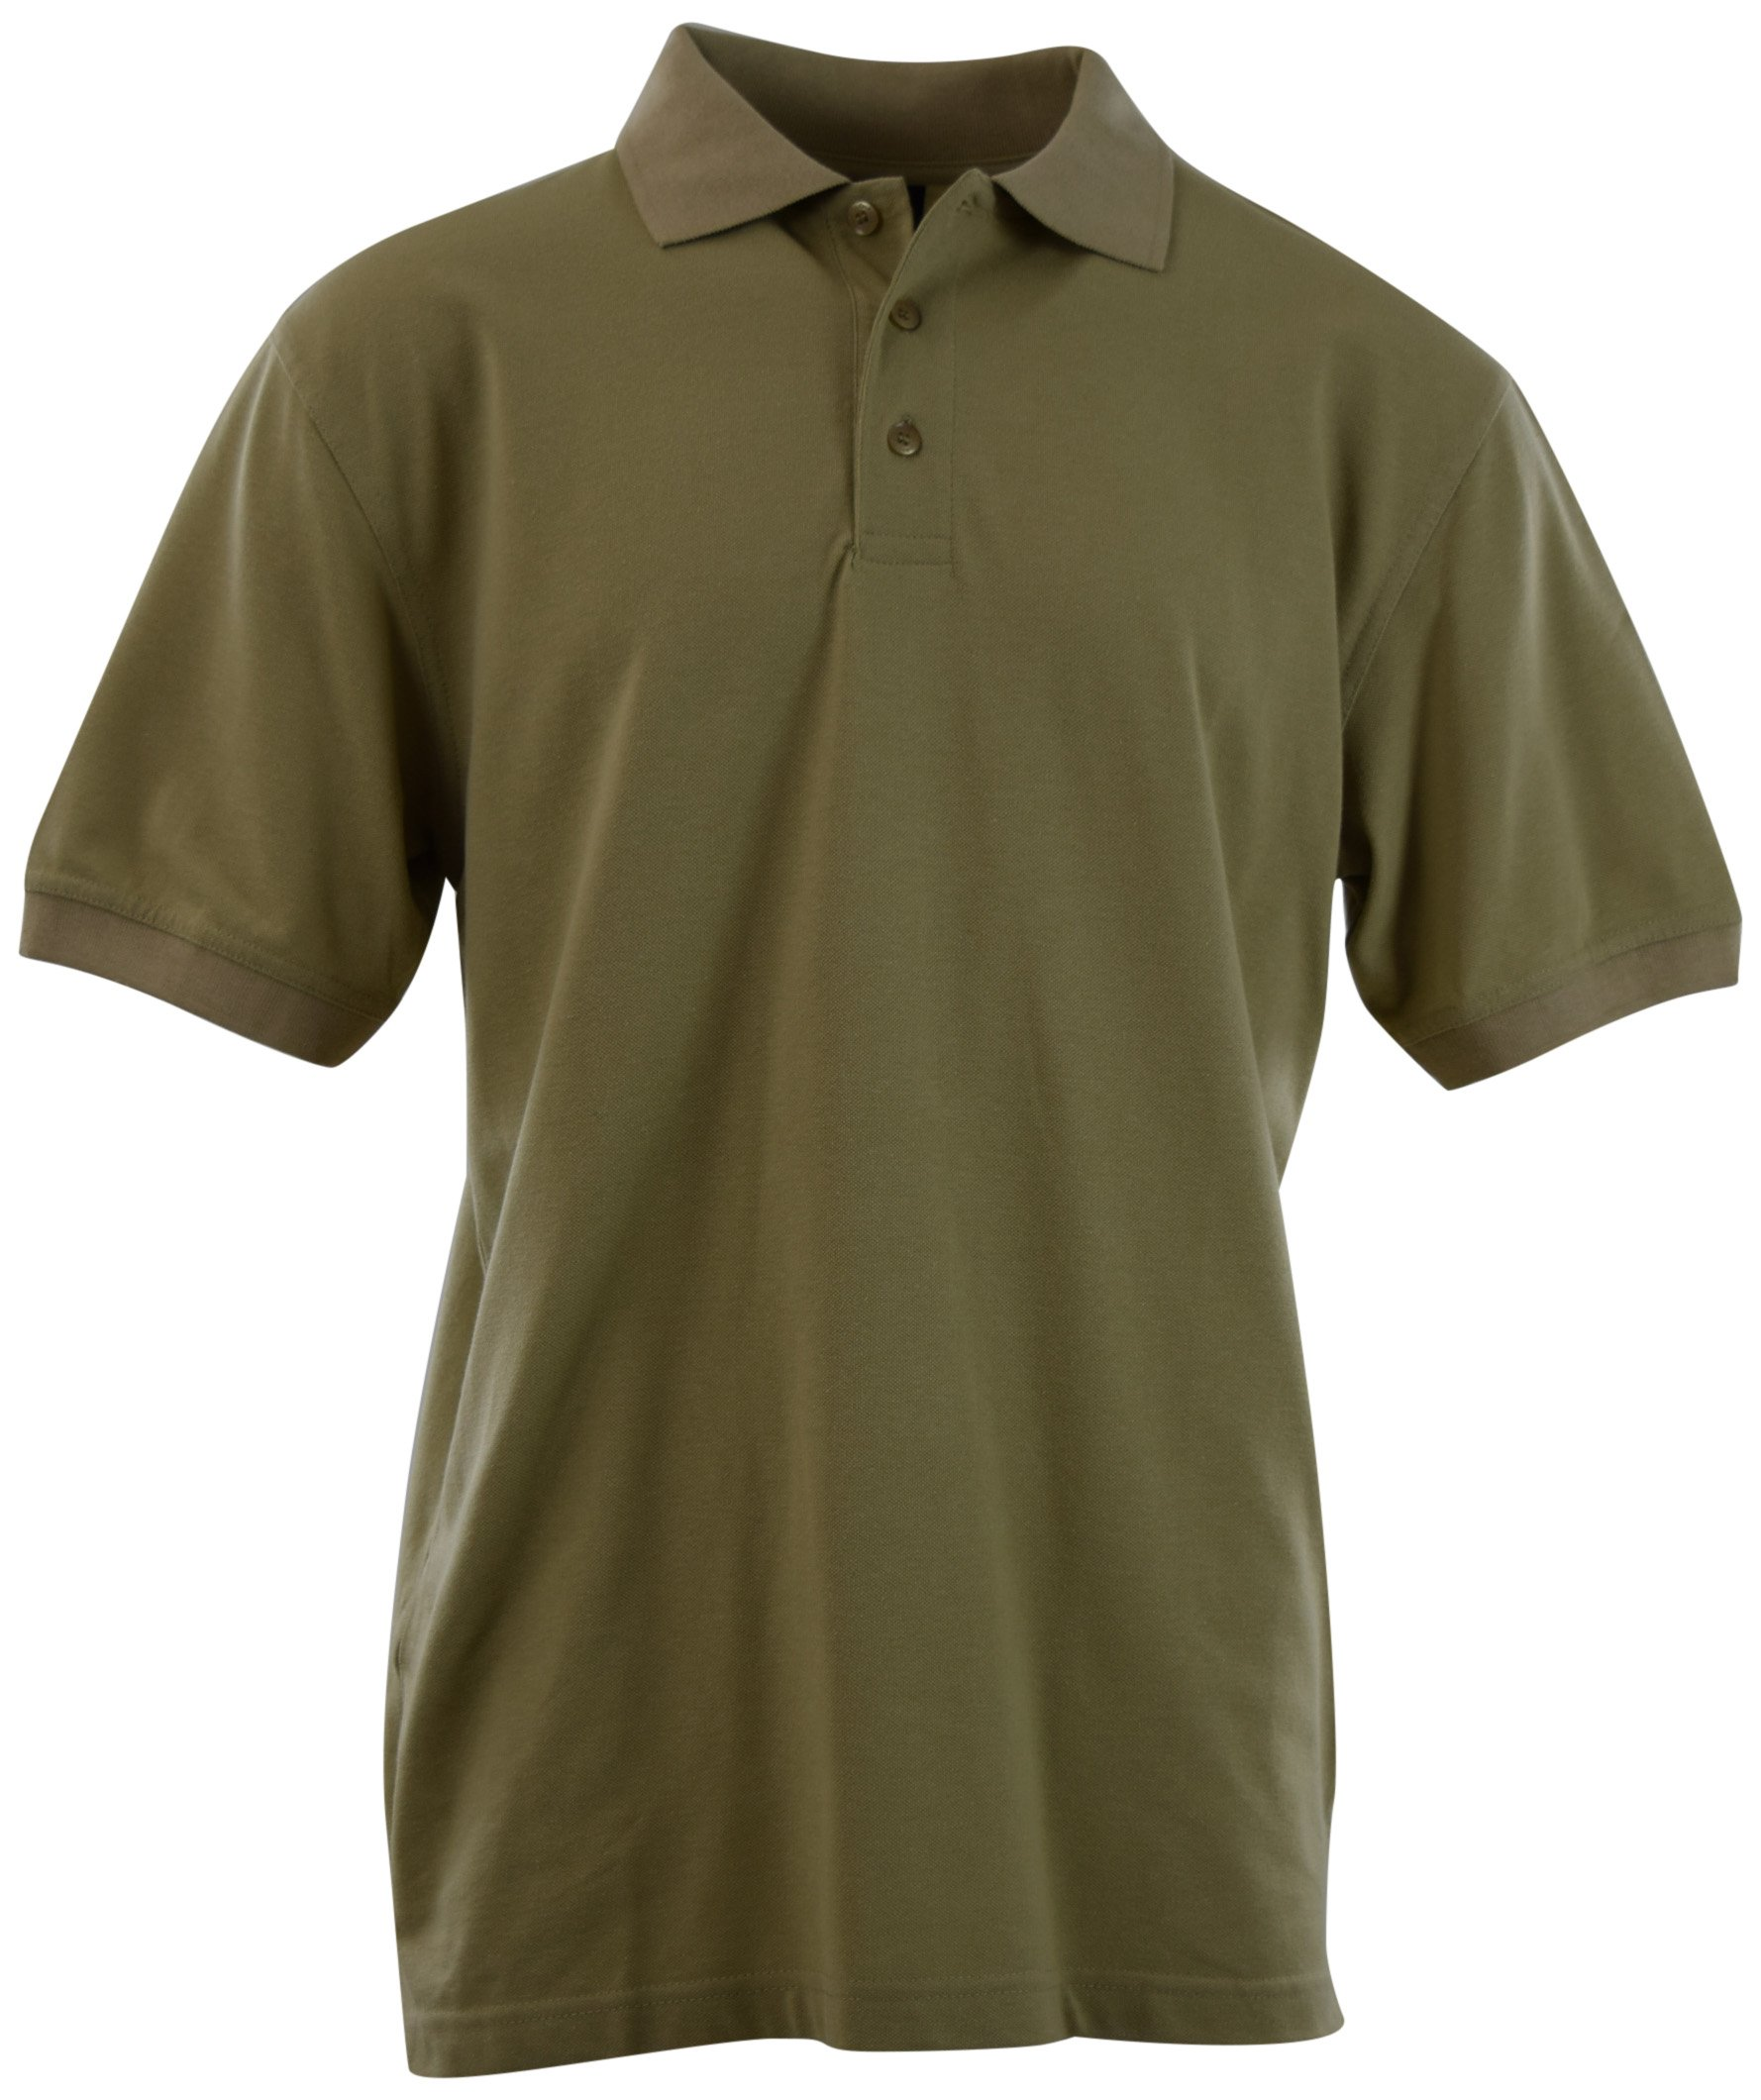 ChoiceApparel Mens Classic Cotton Pique Polo Shirts (Many Styles and Colors to Choose from) S up 5XL (XL, 1001-KHAKI)